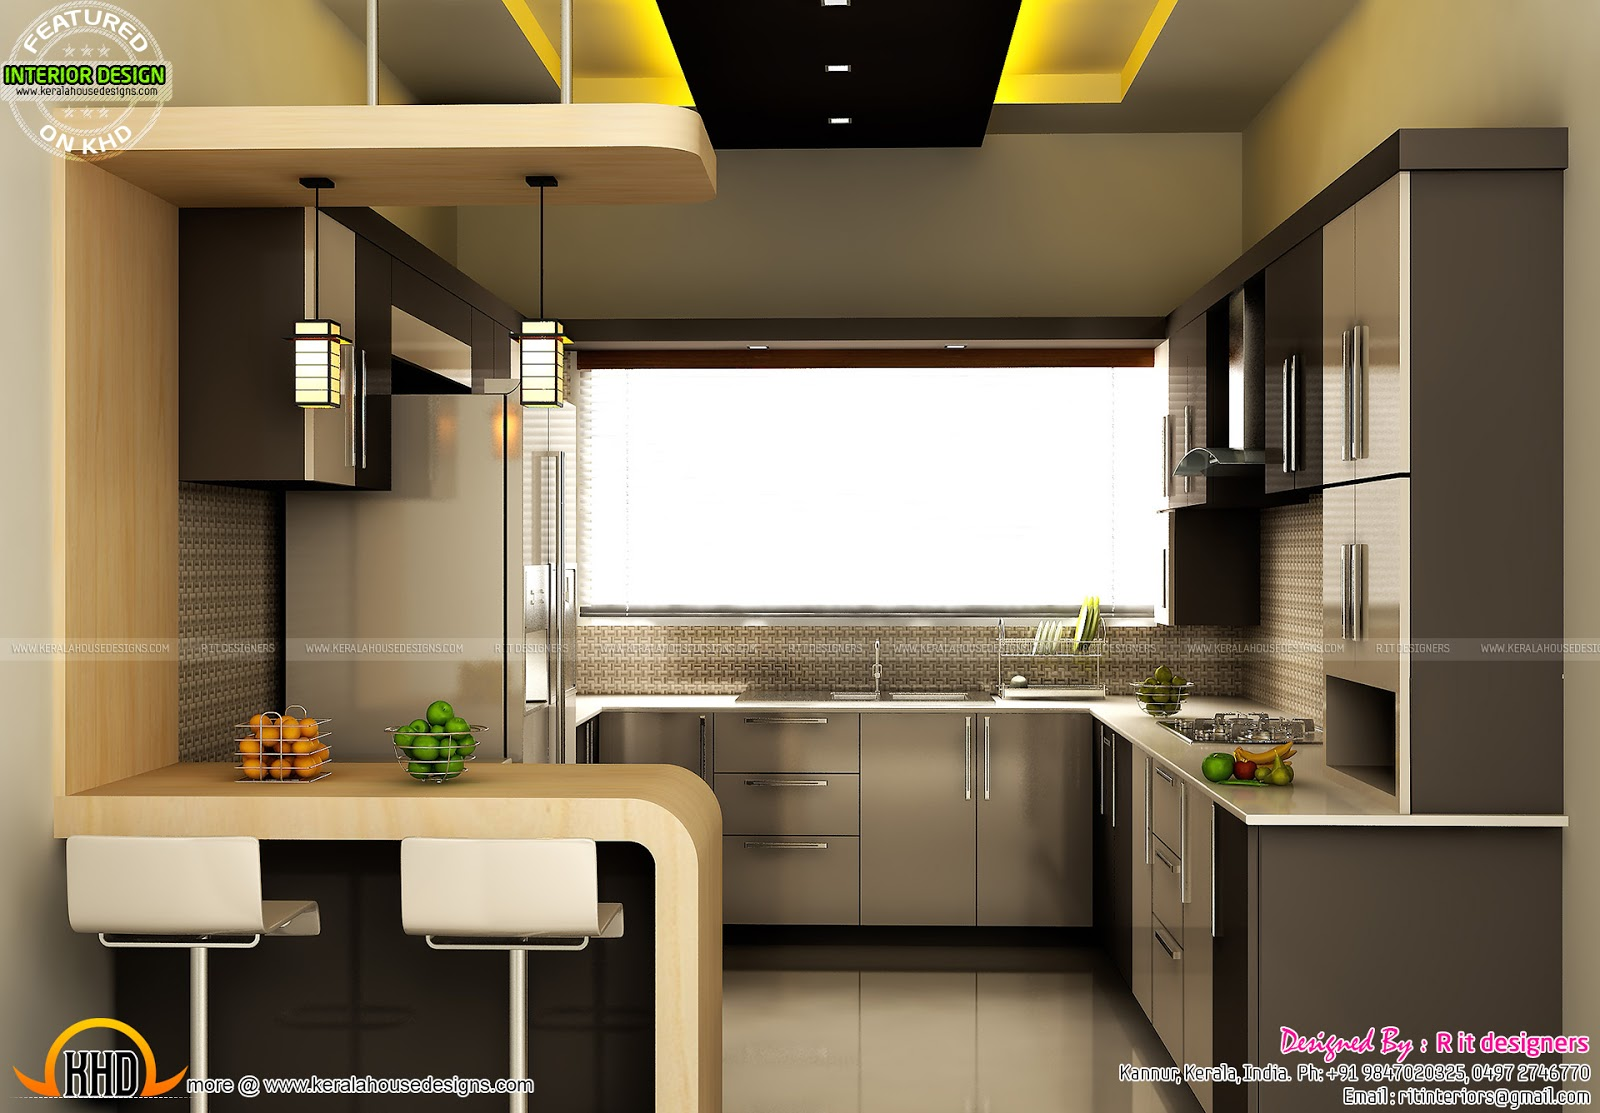 modular kitchen dining and bedroom interior kerala home modular kitchen living and bedroom interior kerala home